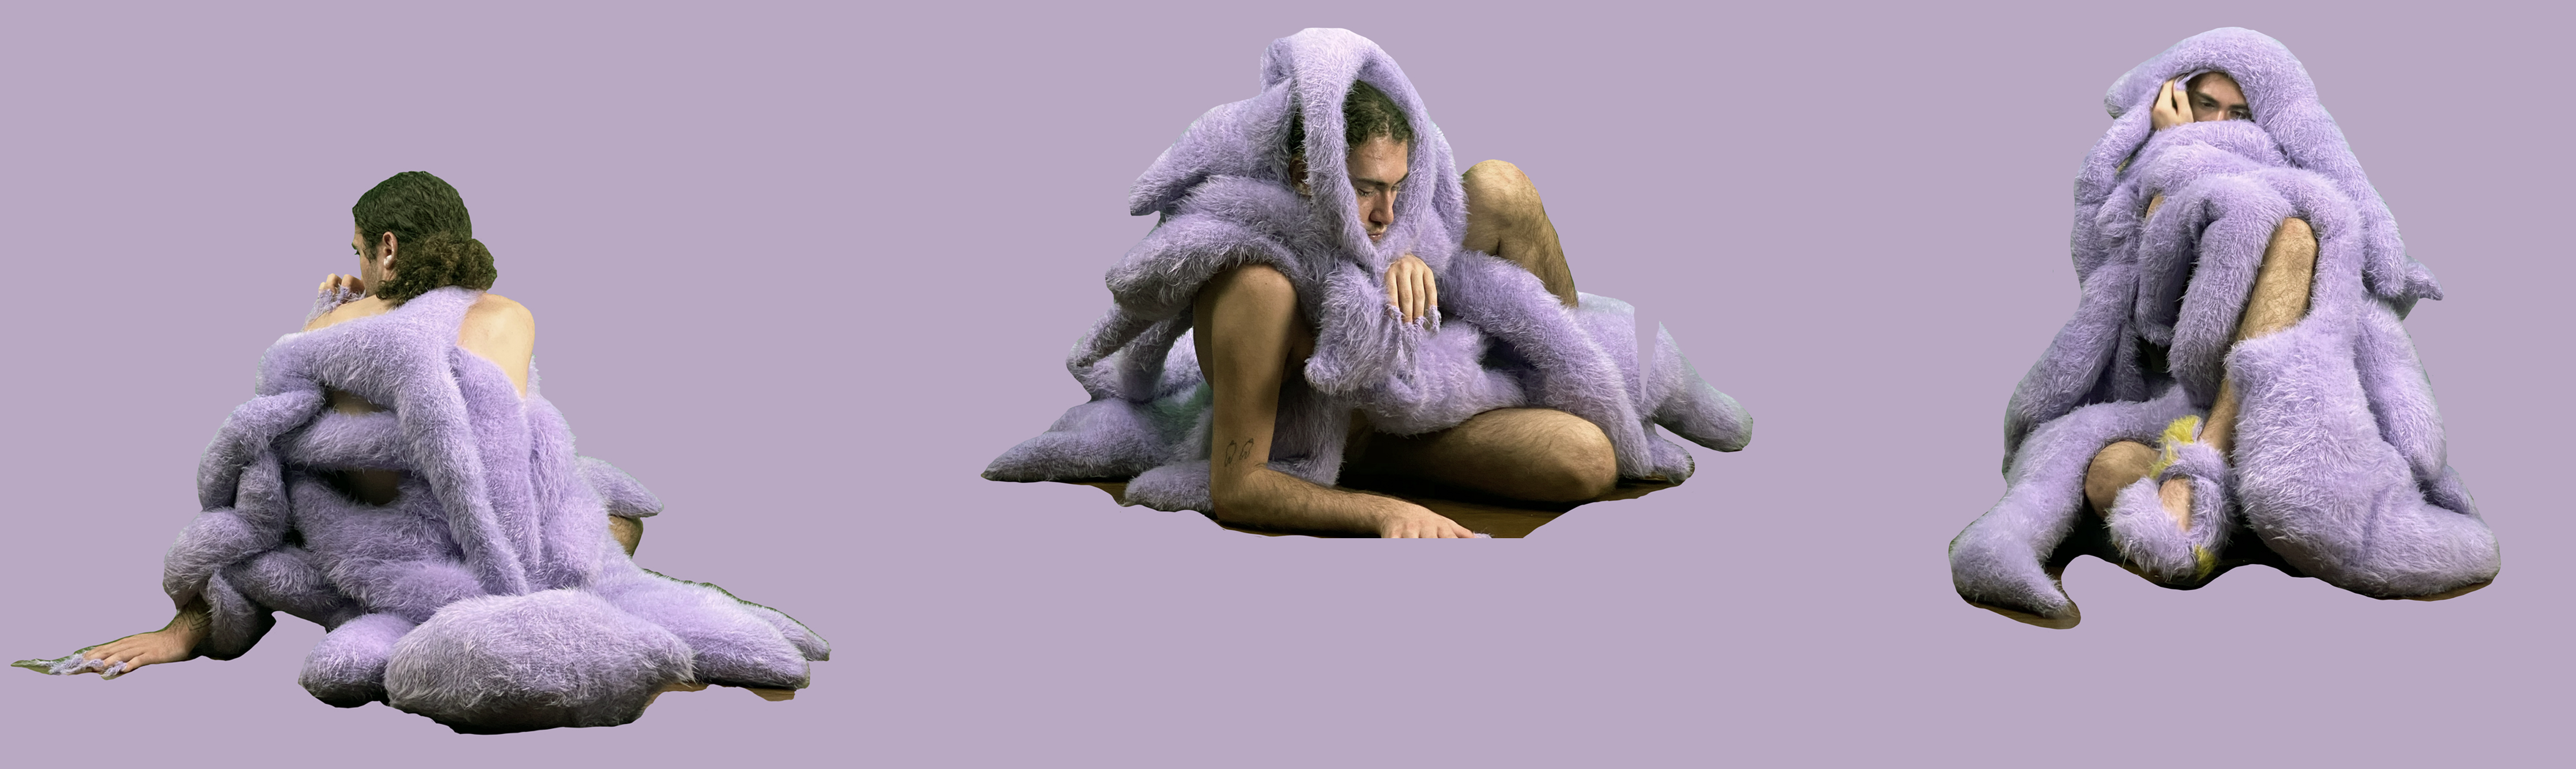 Stephanie Uhart's BA work, purple comfort, model in furry covering.